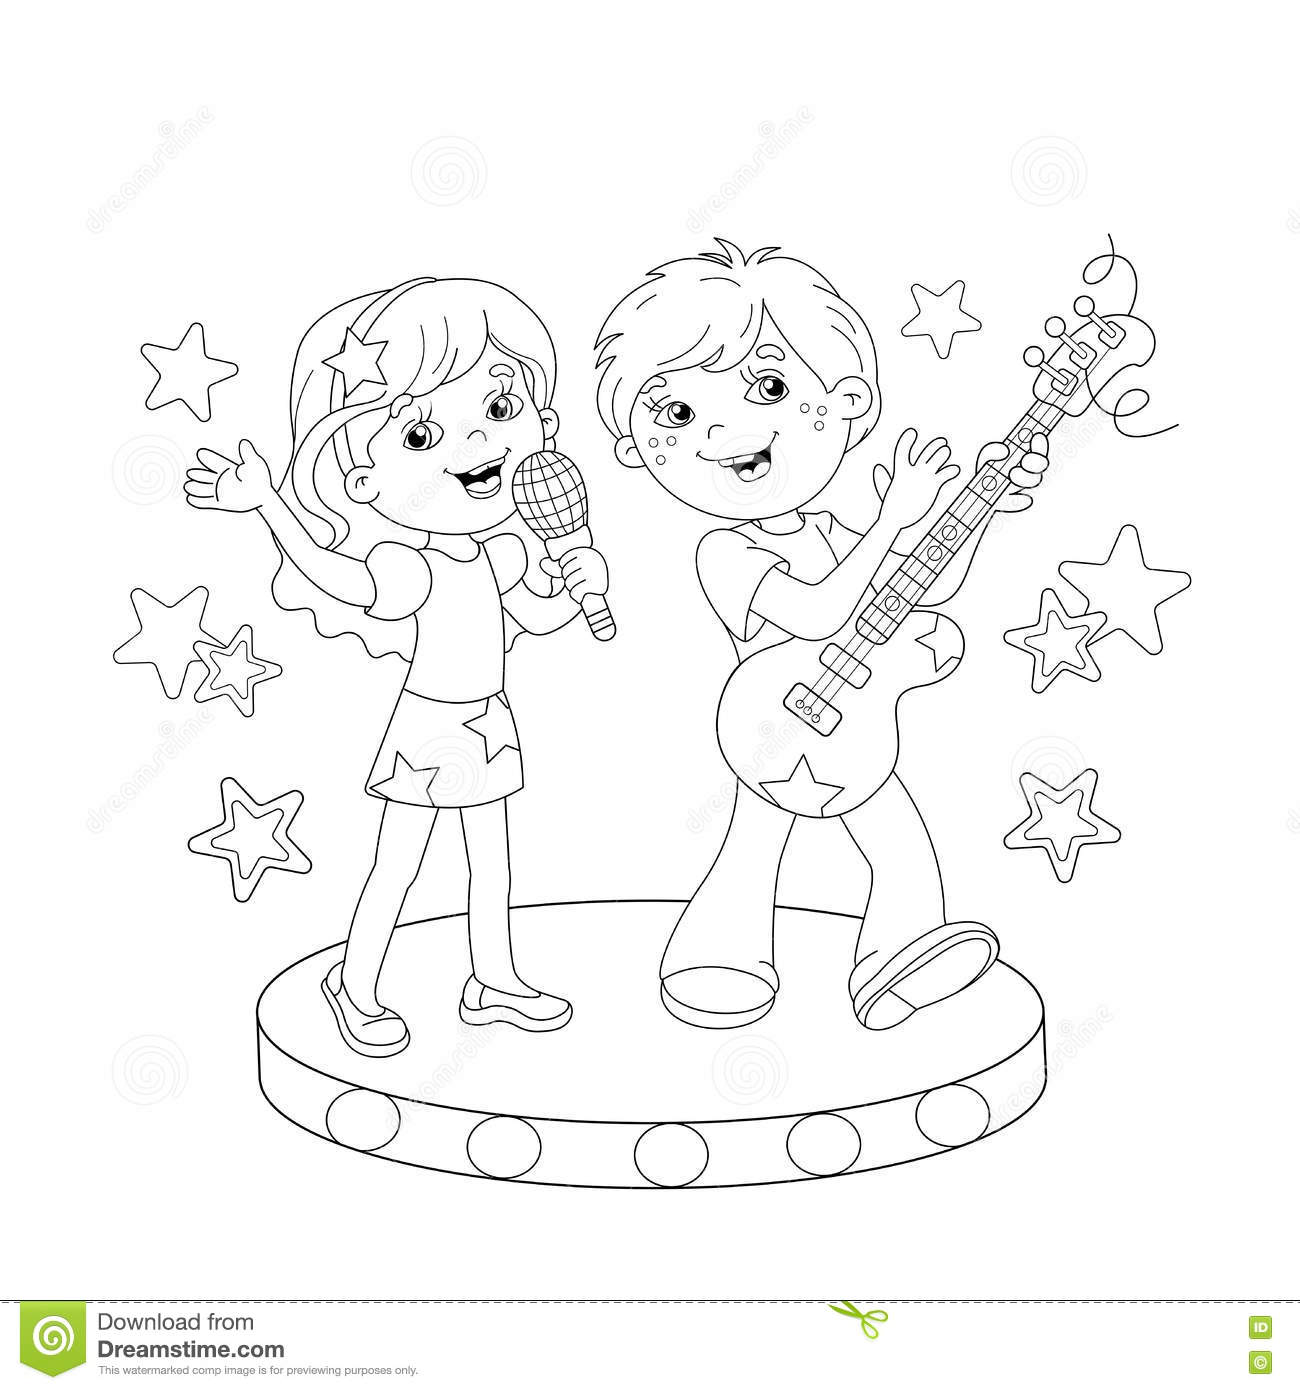 Coloring page outline of boy and girl singing a song